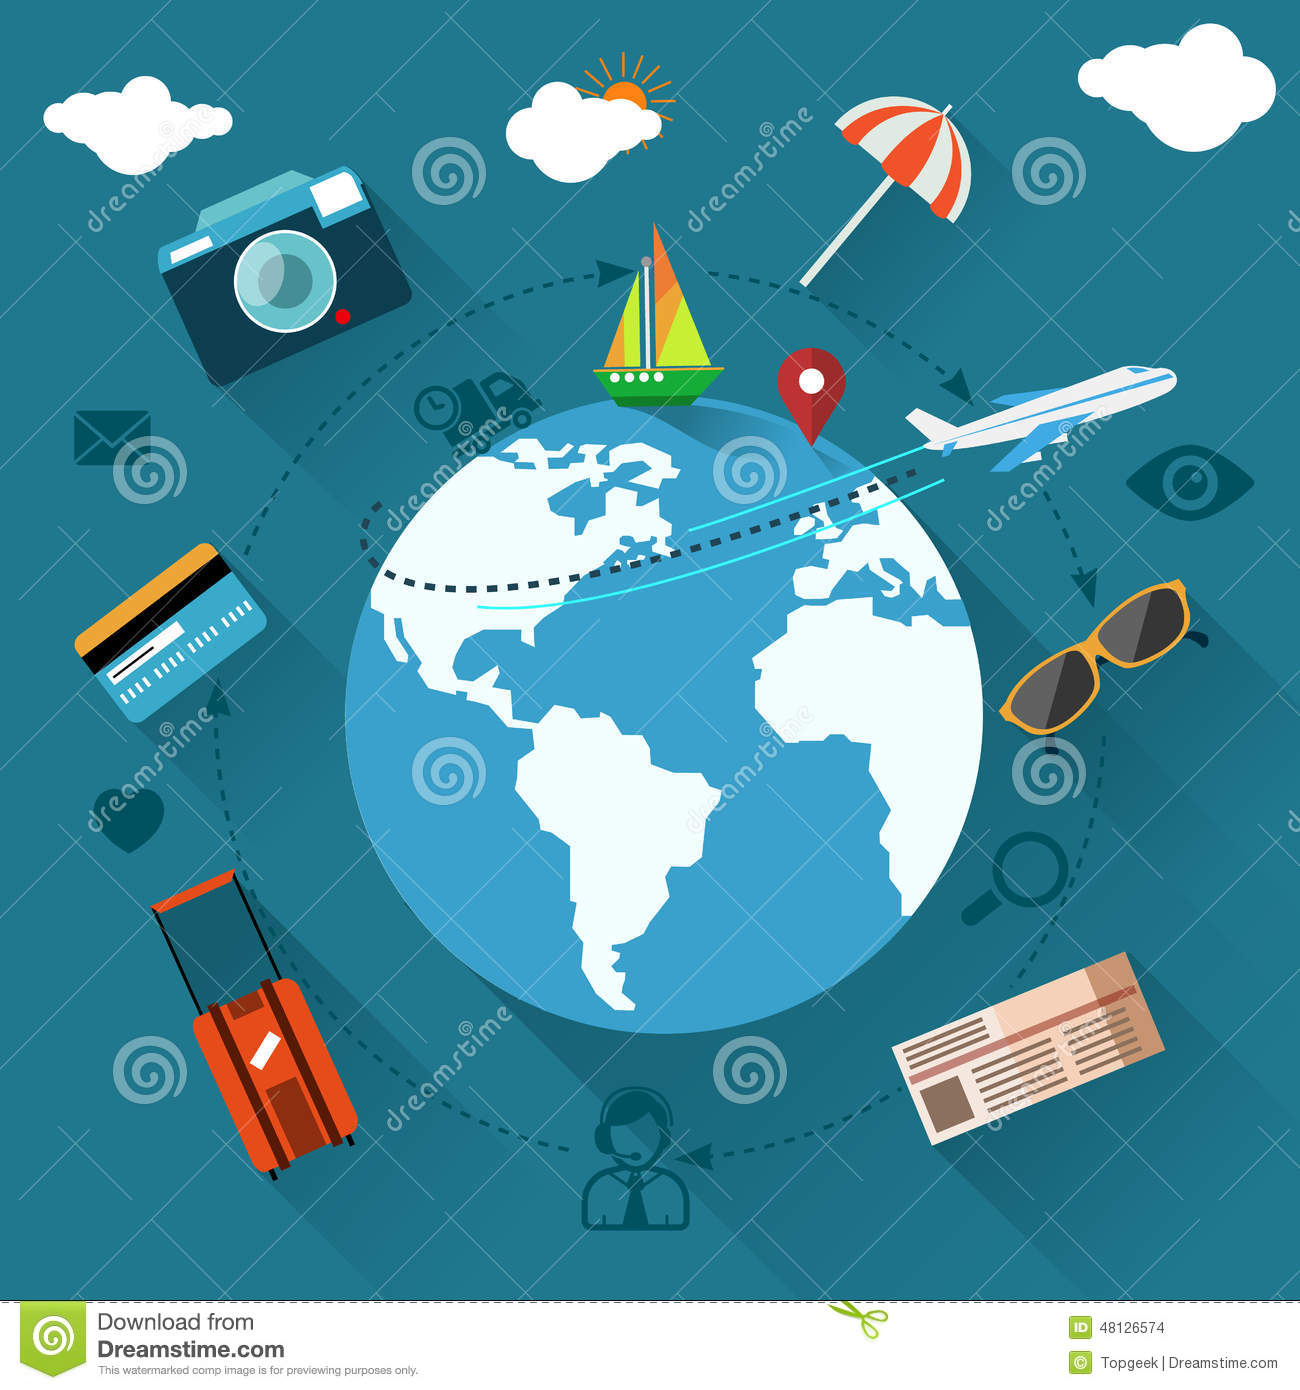 International Travel By Airplane Stock Vector - Image: 48126574